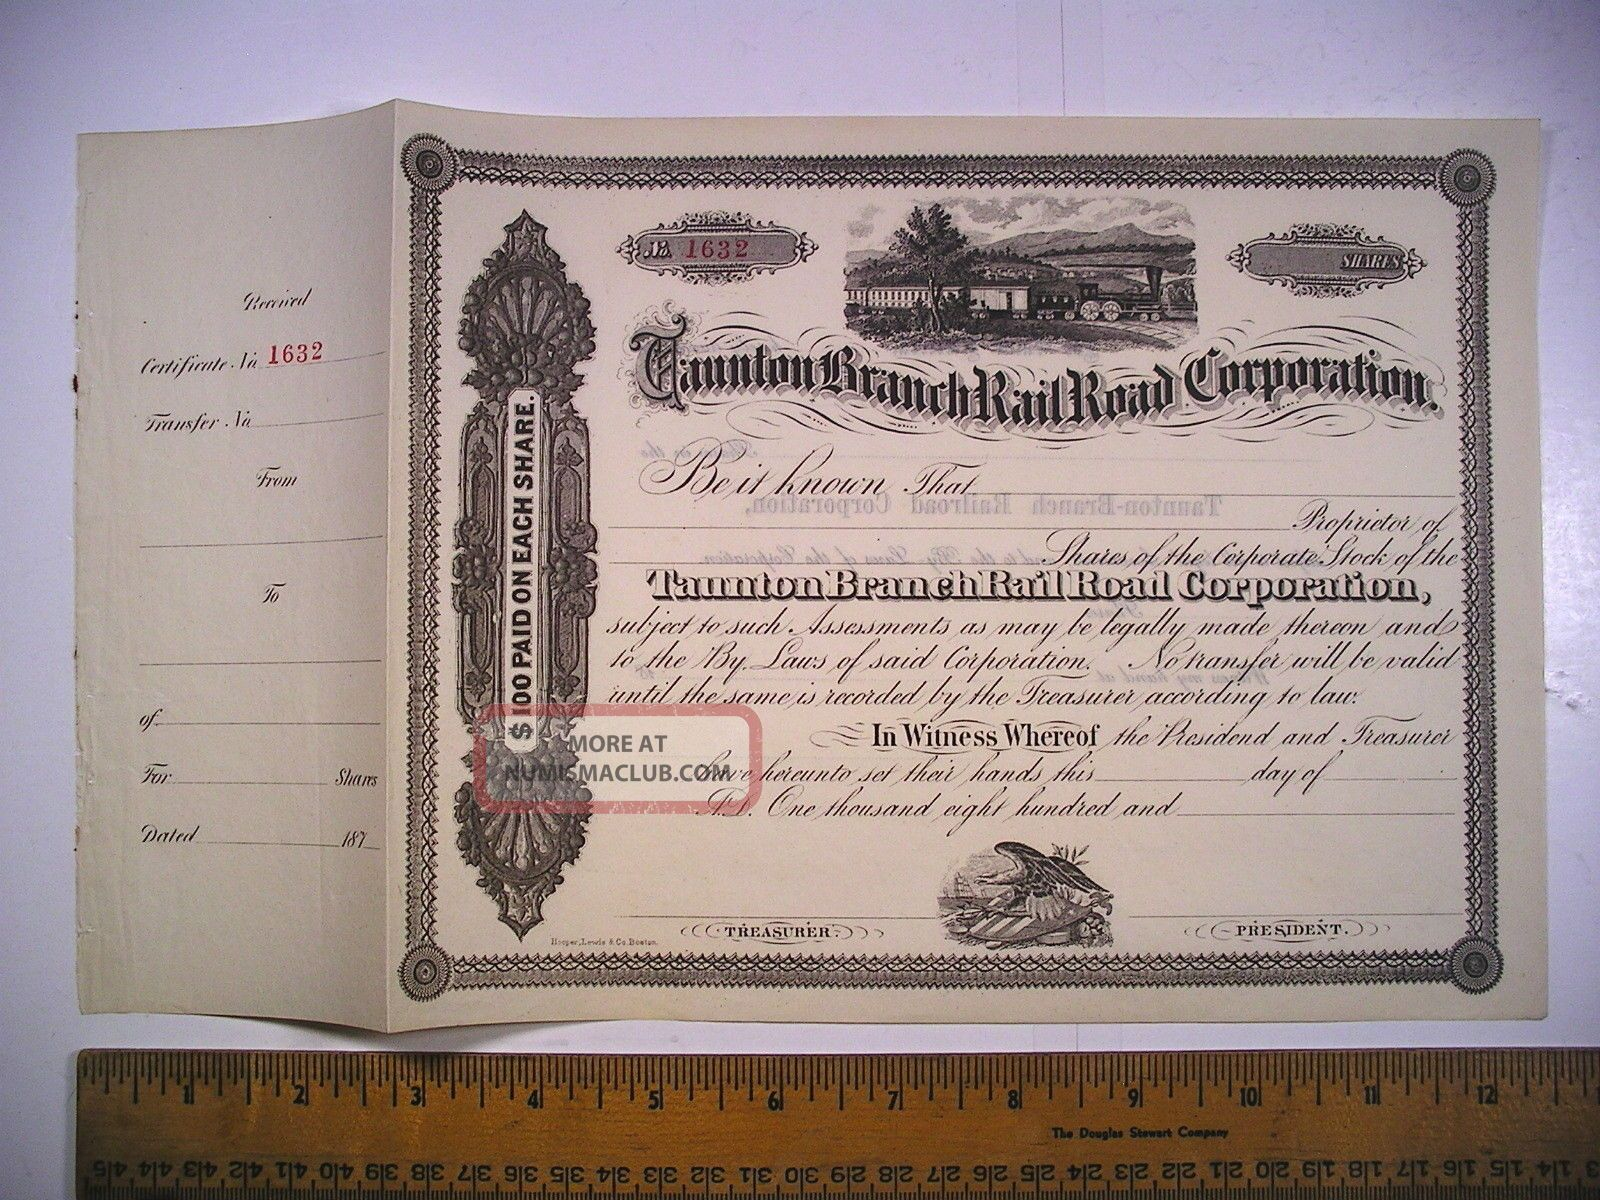 1800s Ma Stock Cert Taunton Branch Rail Road Corp Unissued 1632 Likely C1870s Transportation photo